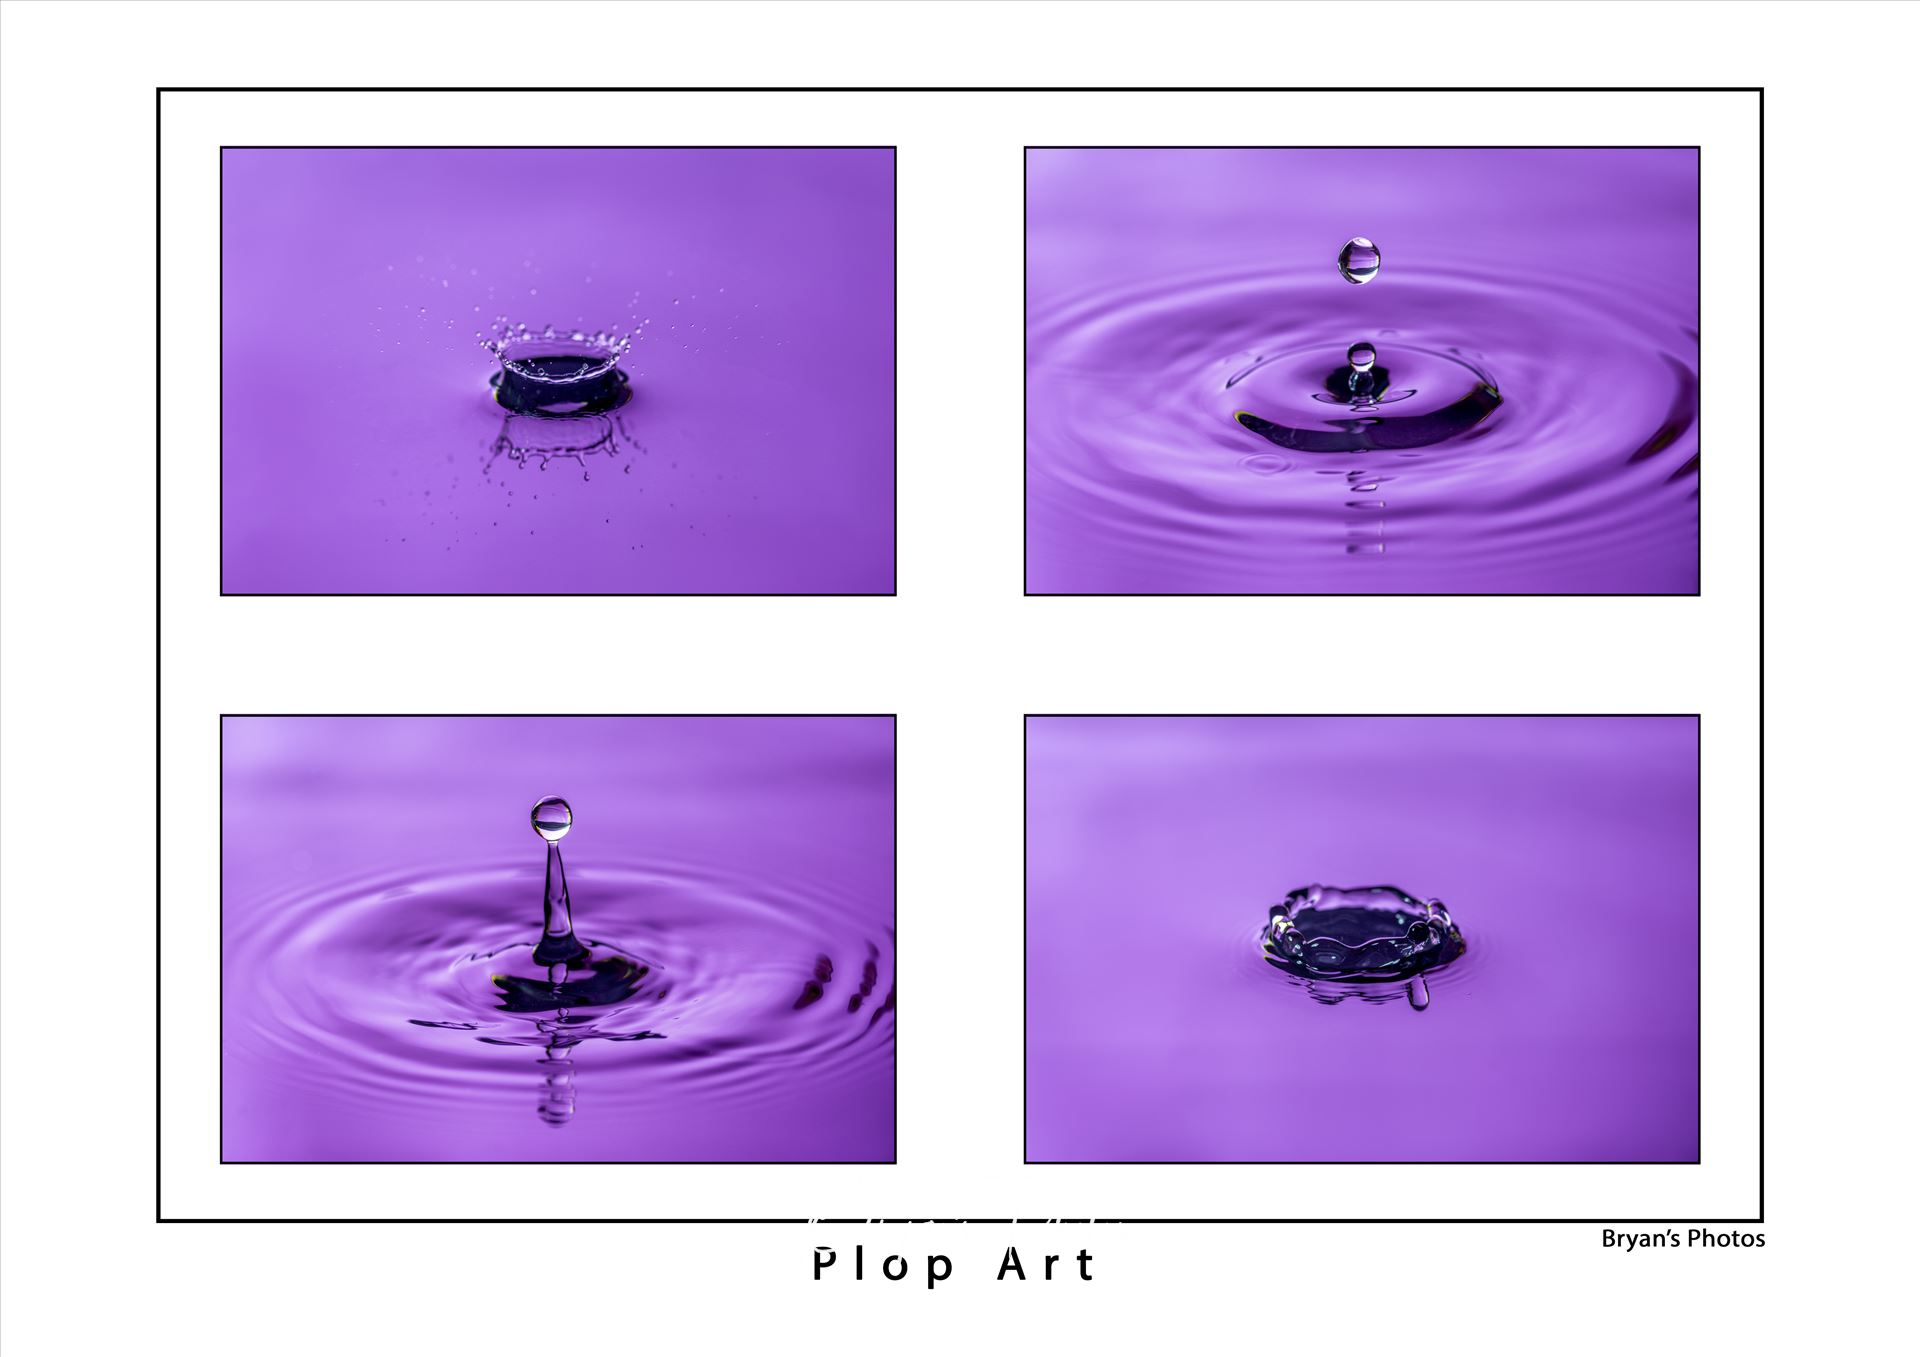 Plop Art An image made up of 4 water drop photographs. by Bryans Photos